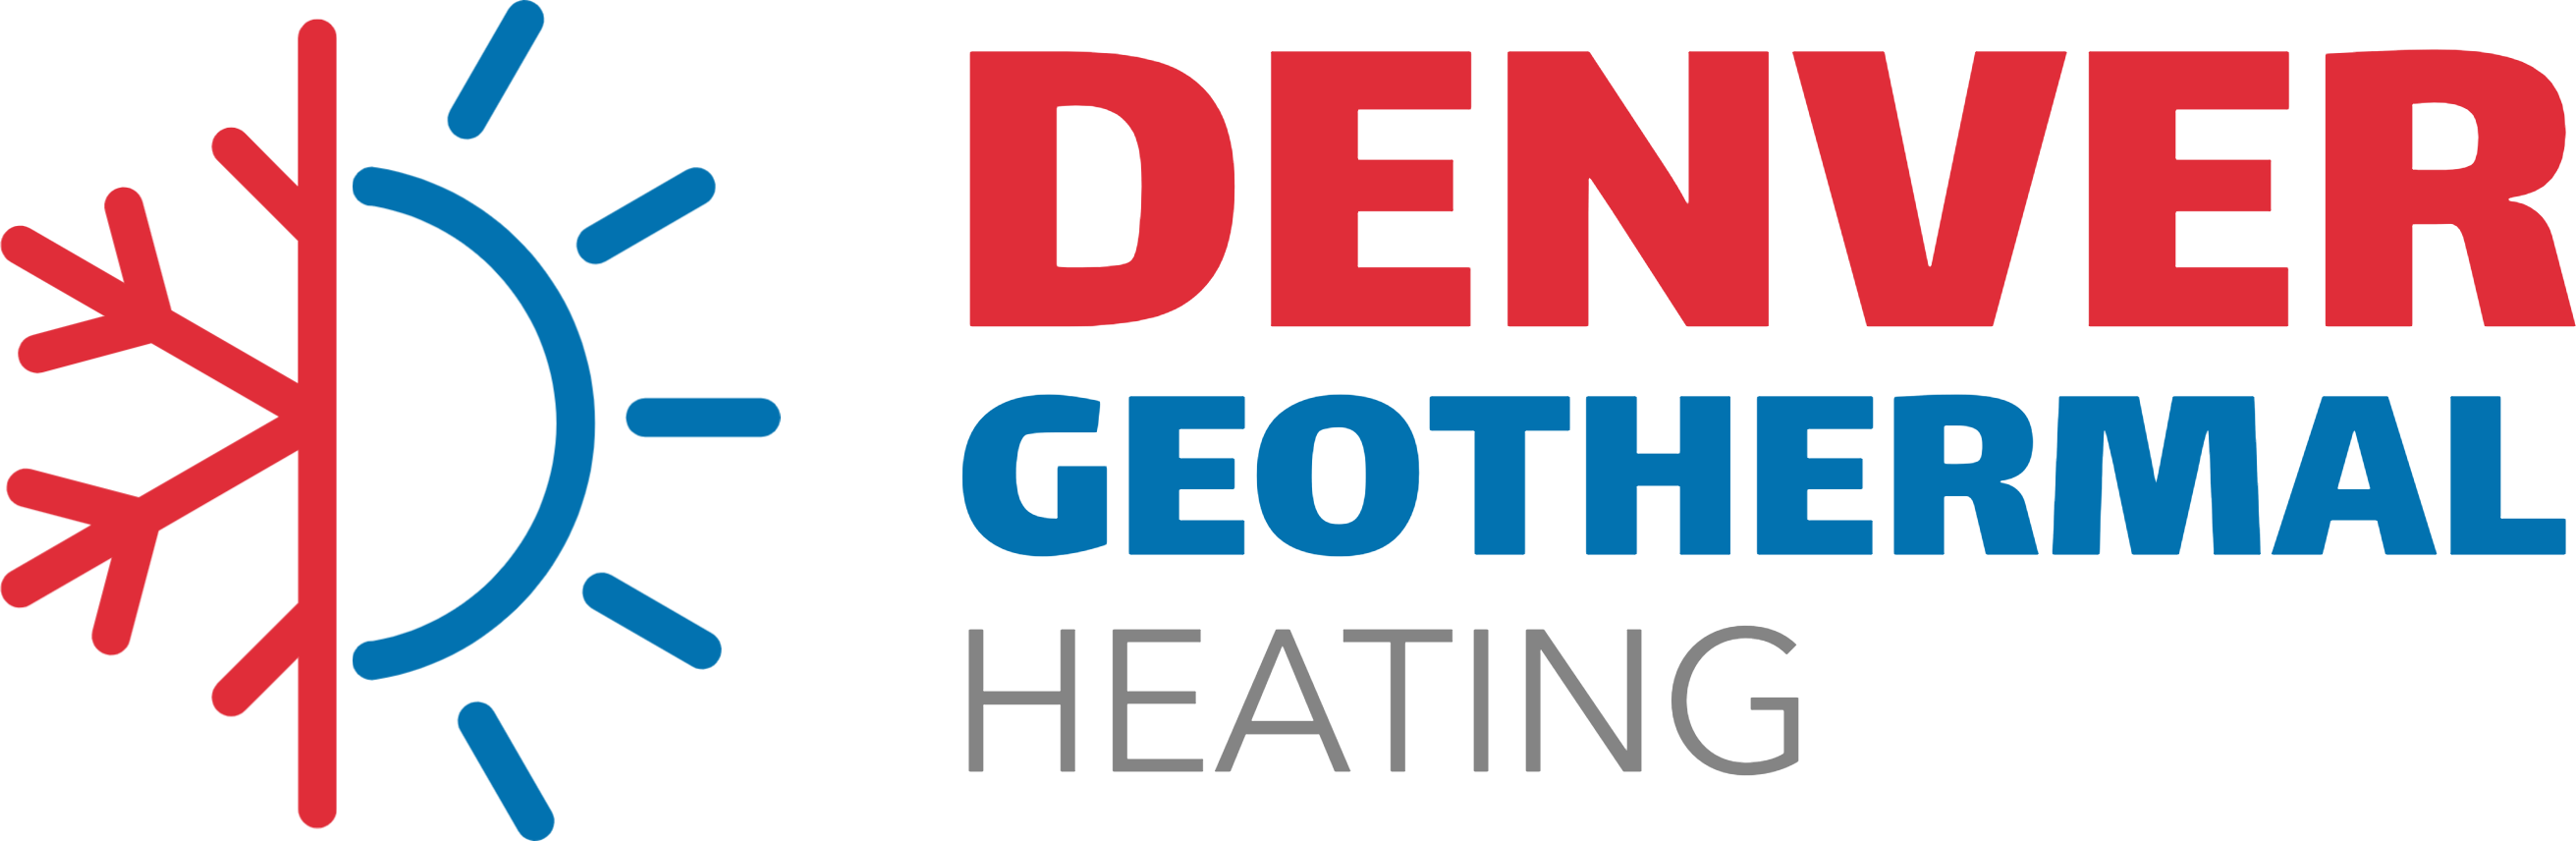 Denver Geothermal Heating Home